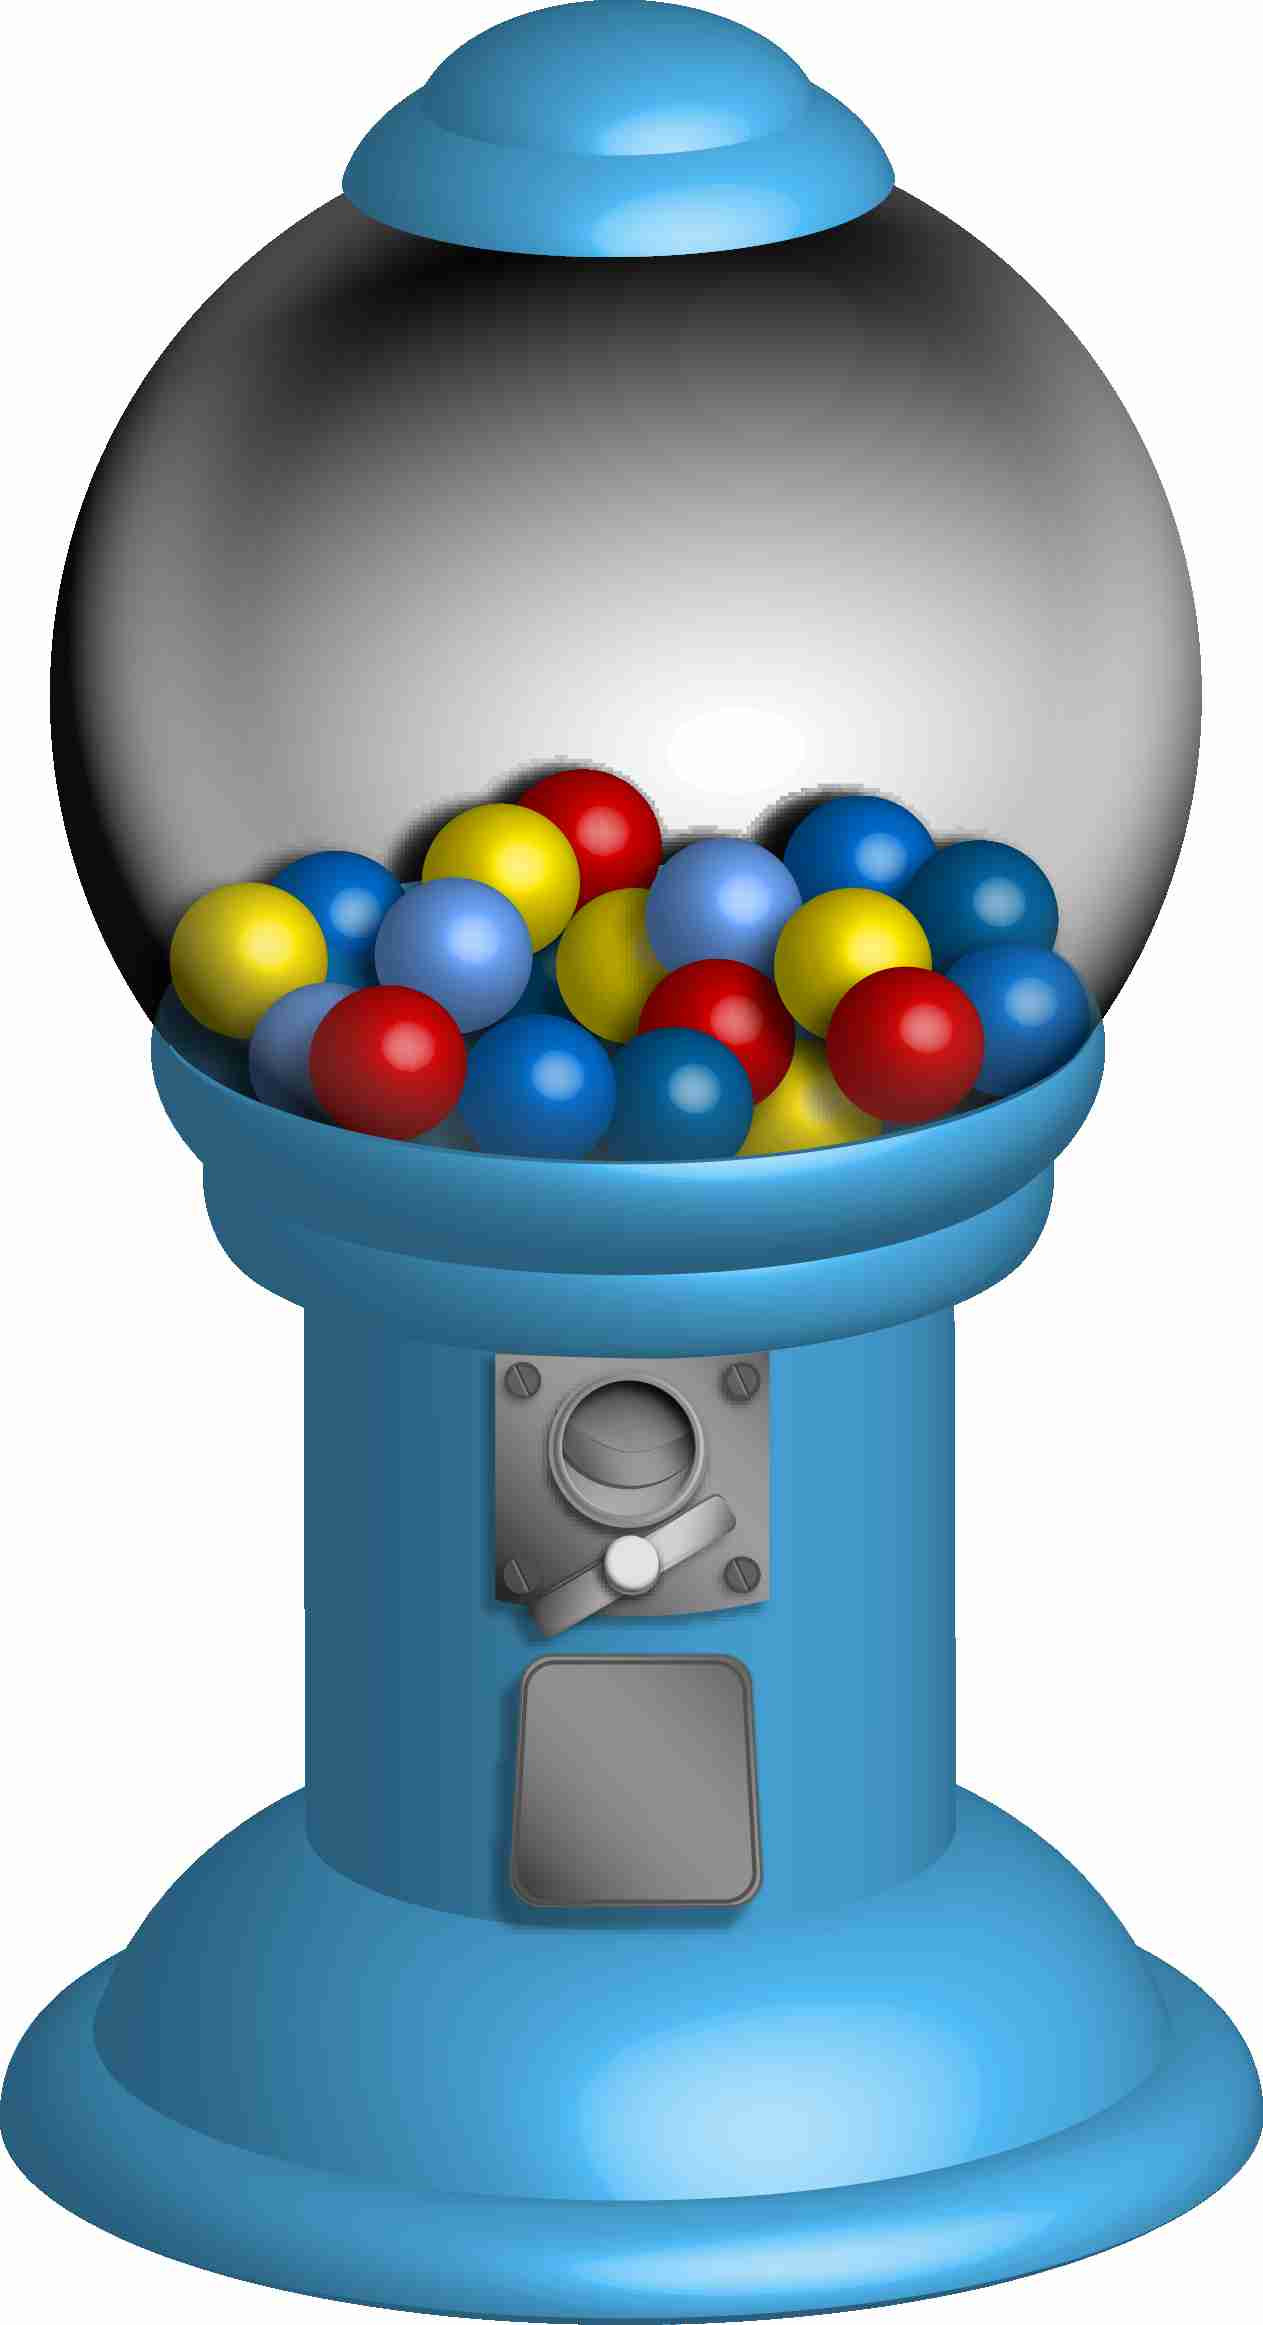 7 clipart ball. Gumball on machine clip